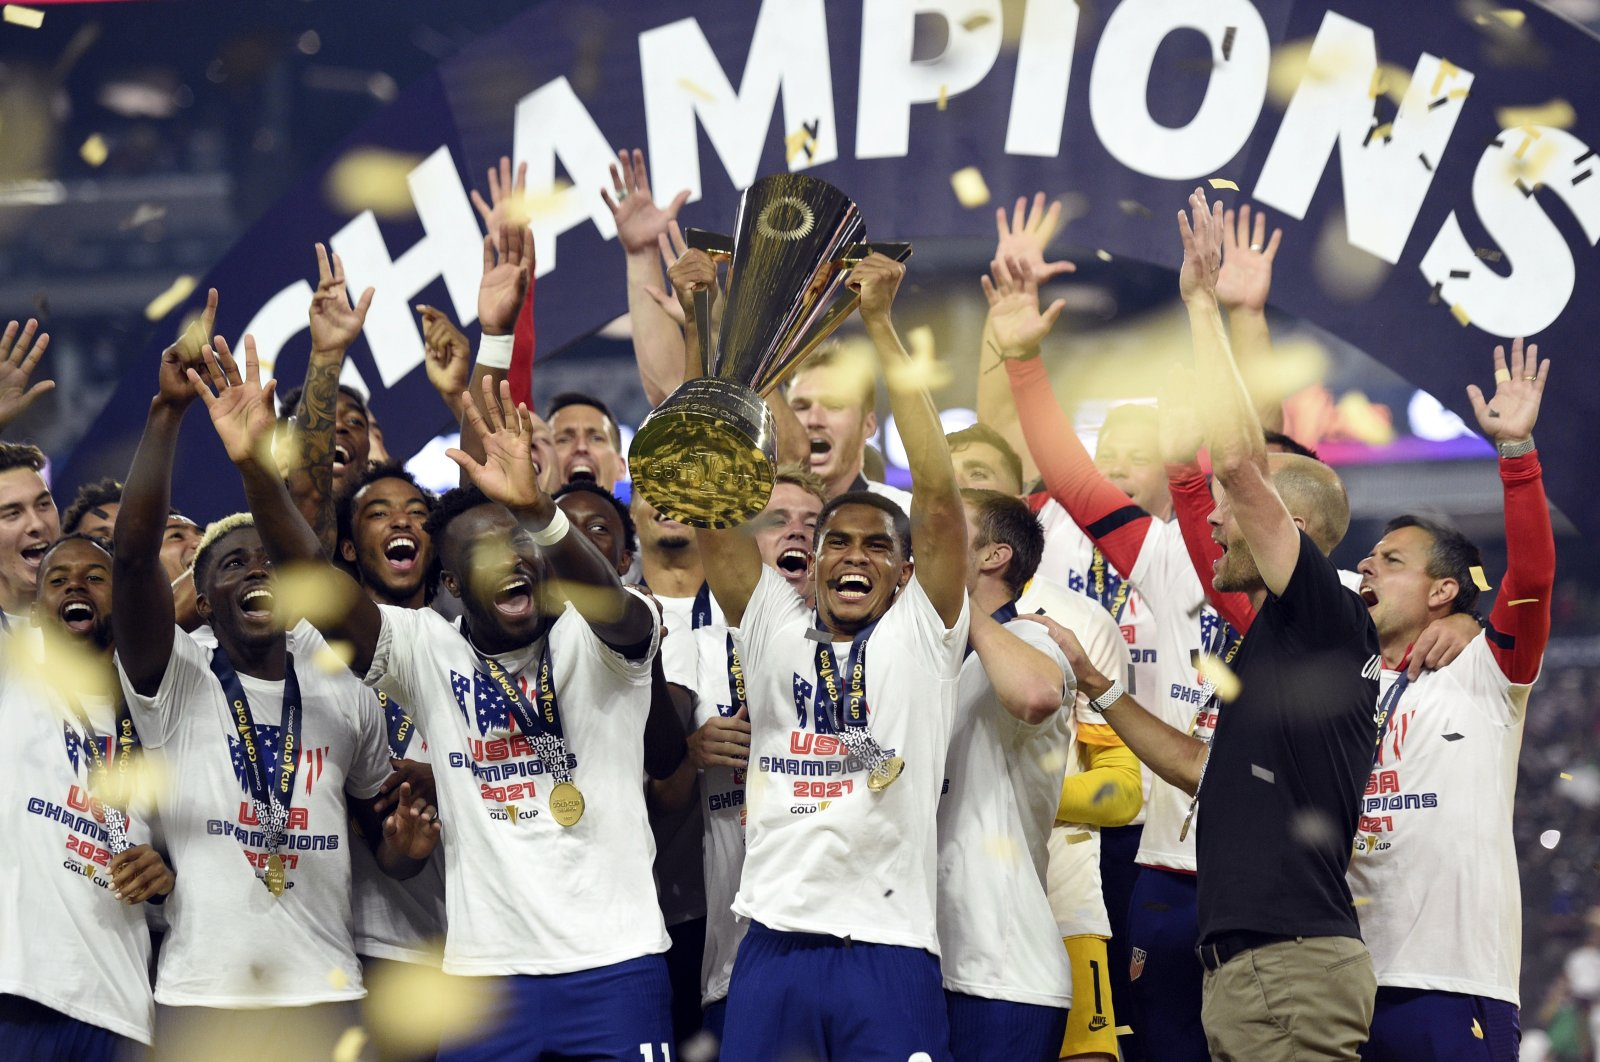 US clinches CONCACAF Gold Cup with extra-time win over Mexico